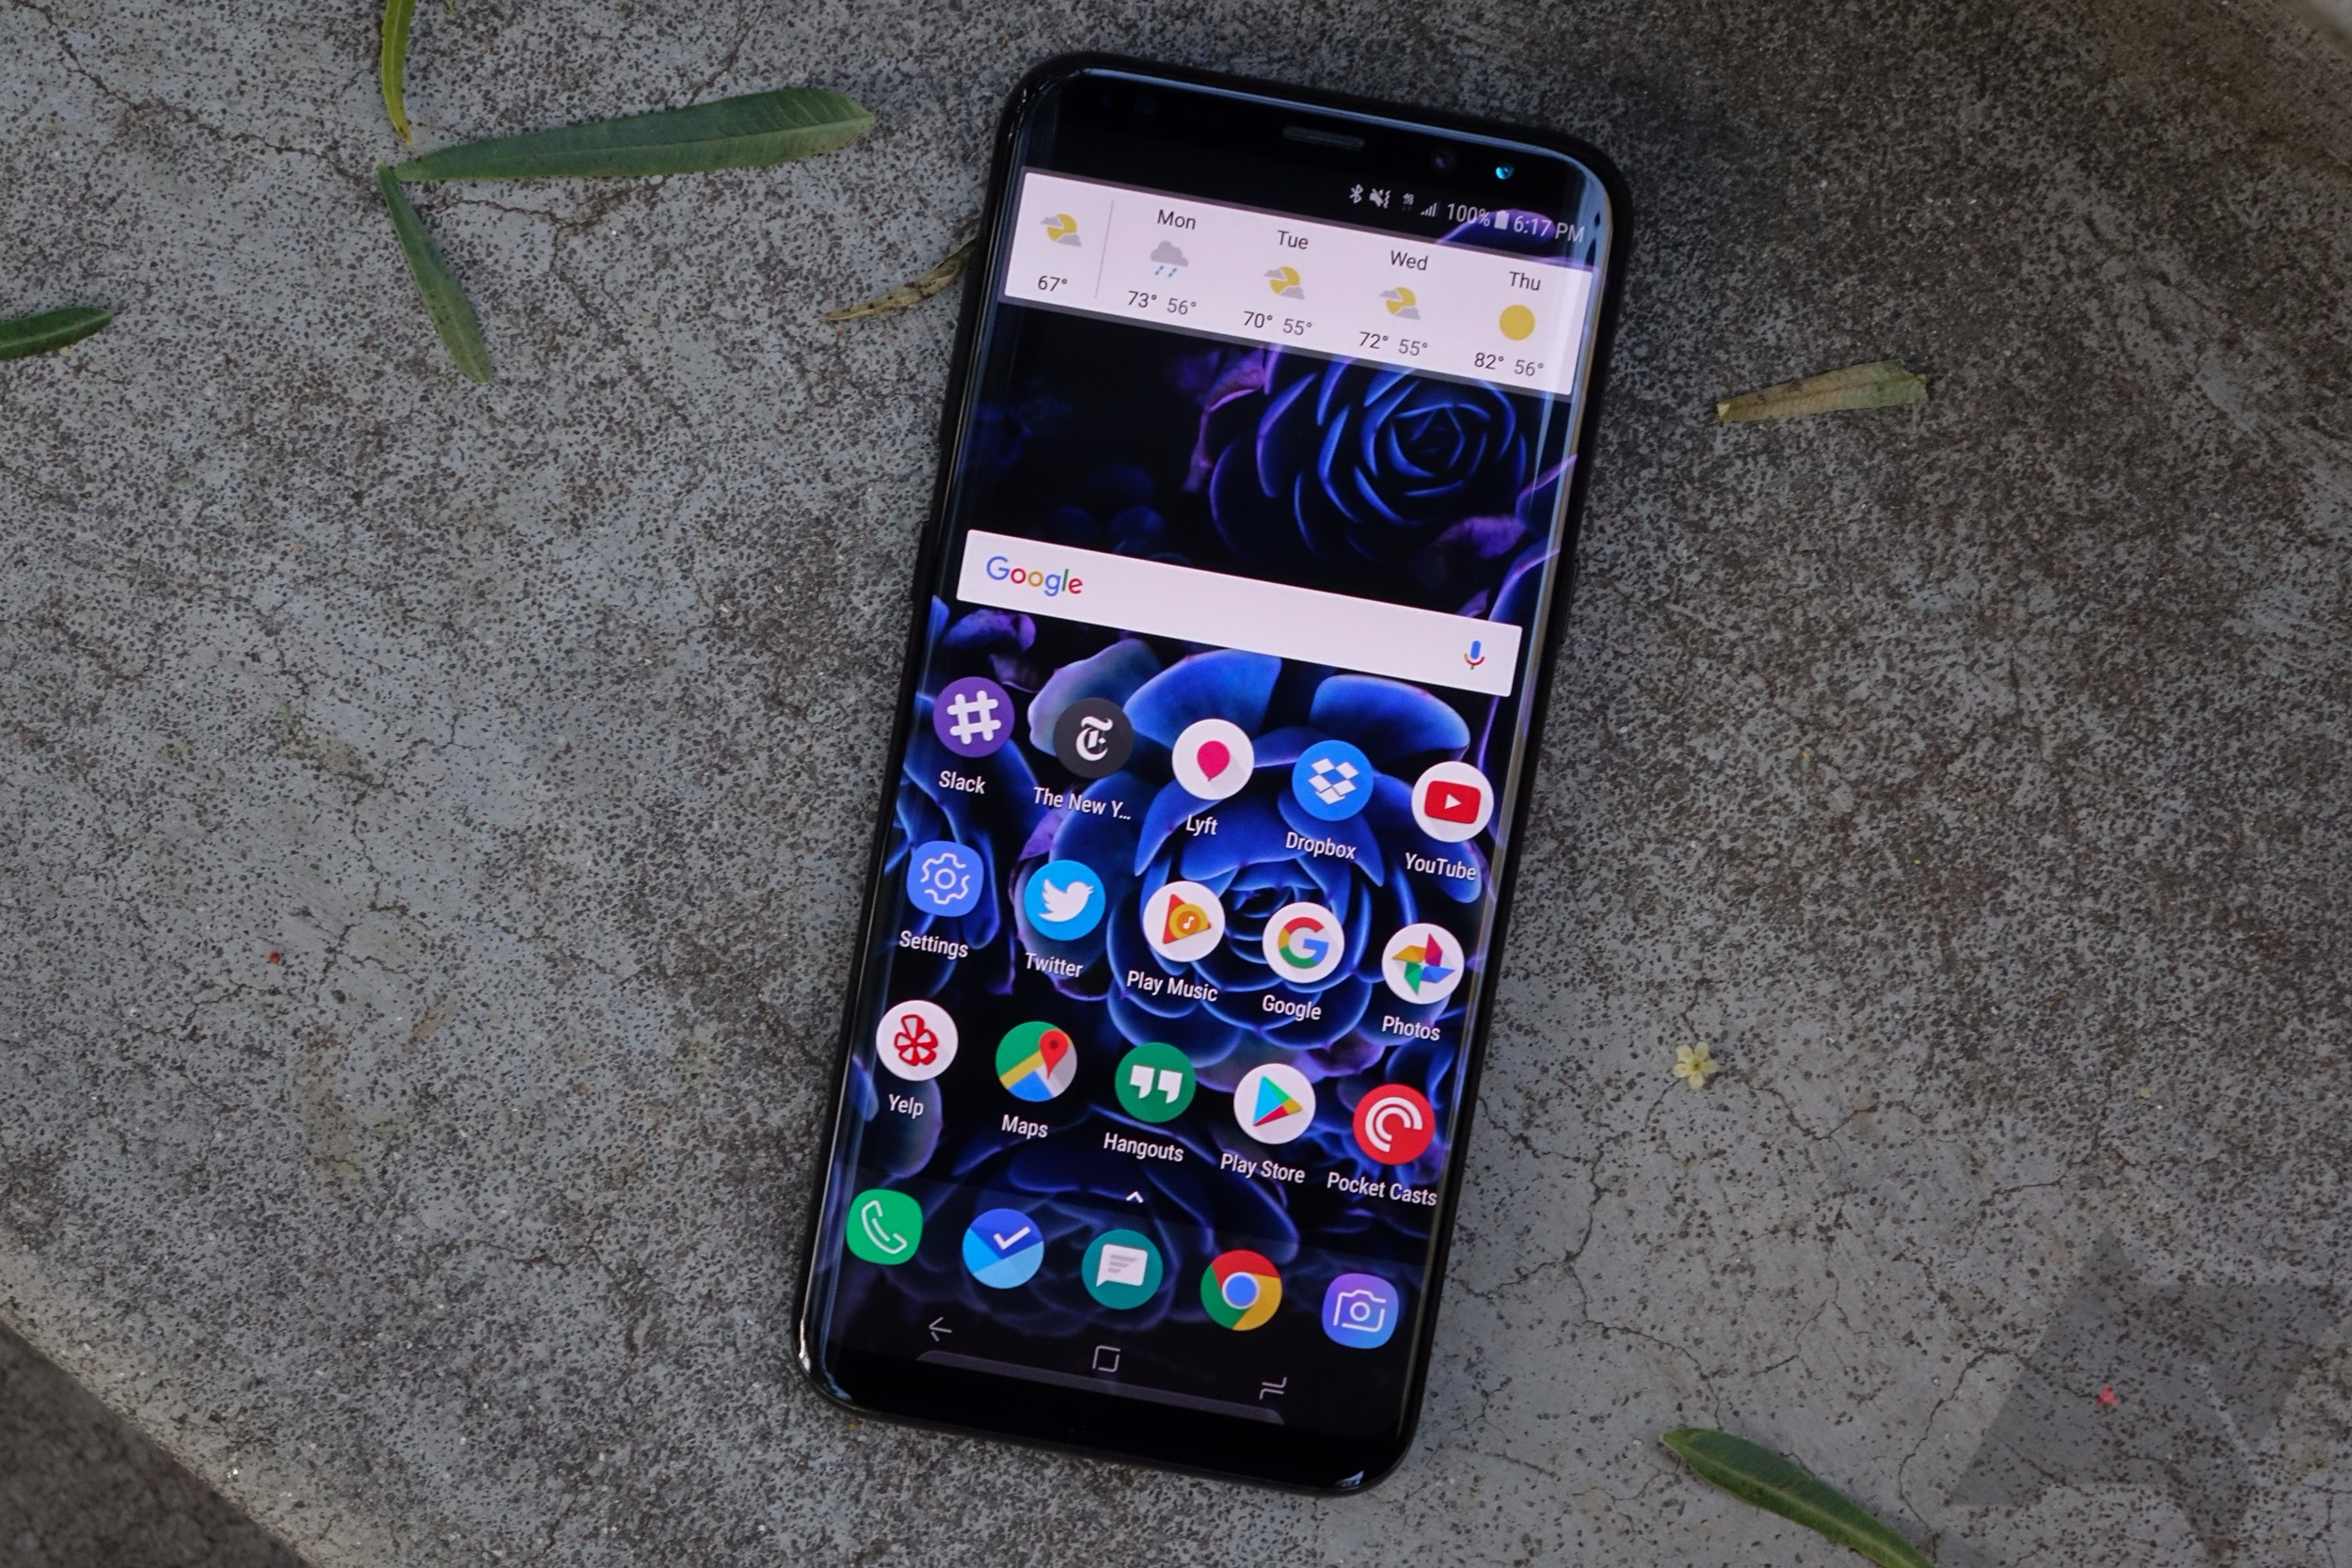 Android 8 0 Oreo update now rolling out to Verizon Galaxy S8 and S8+